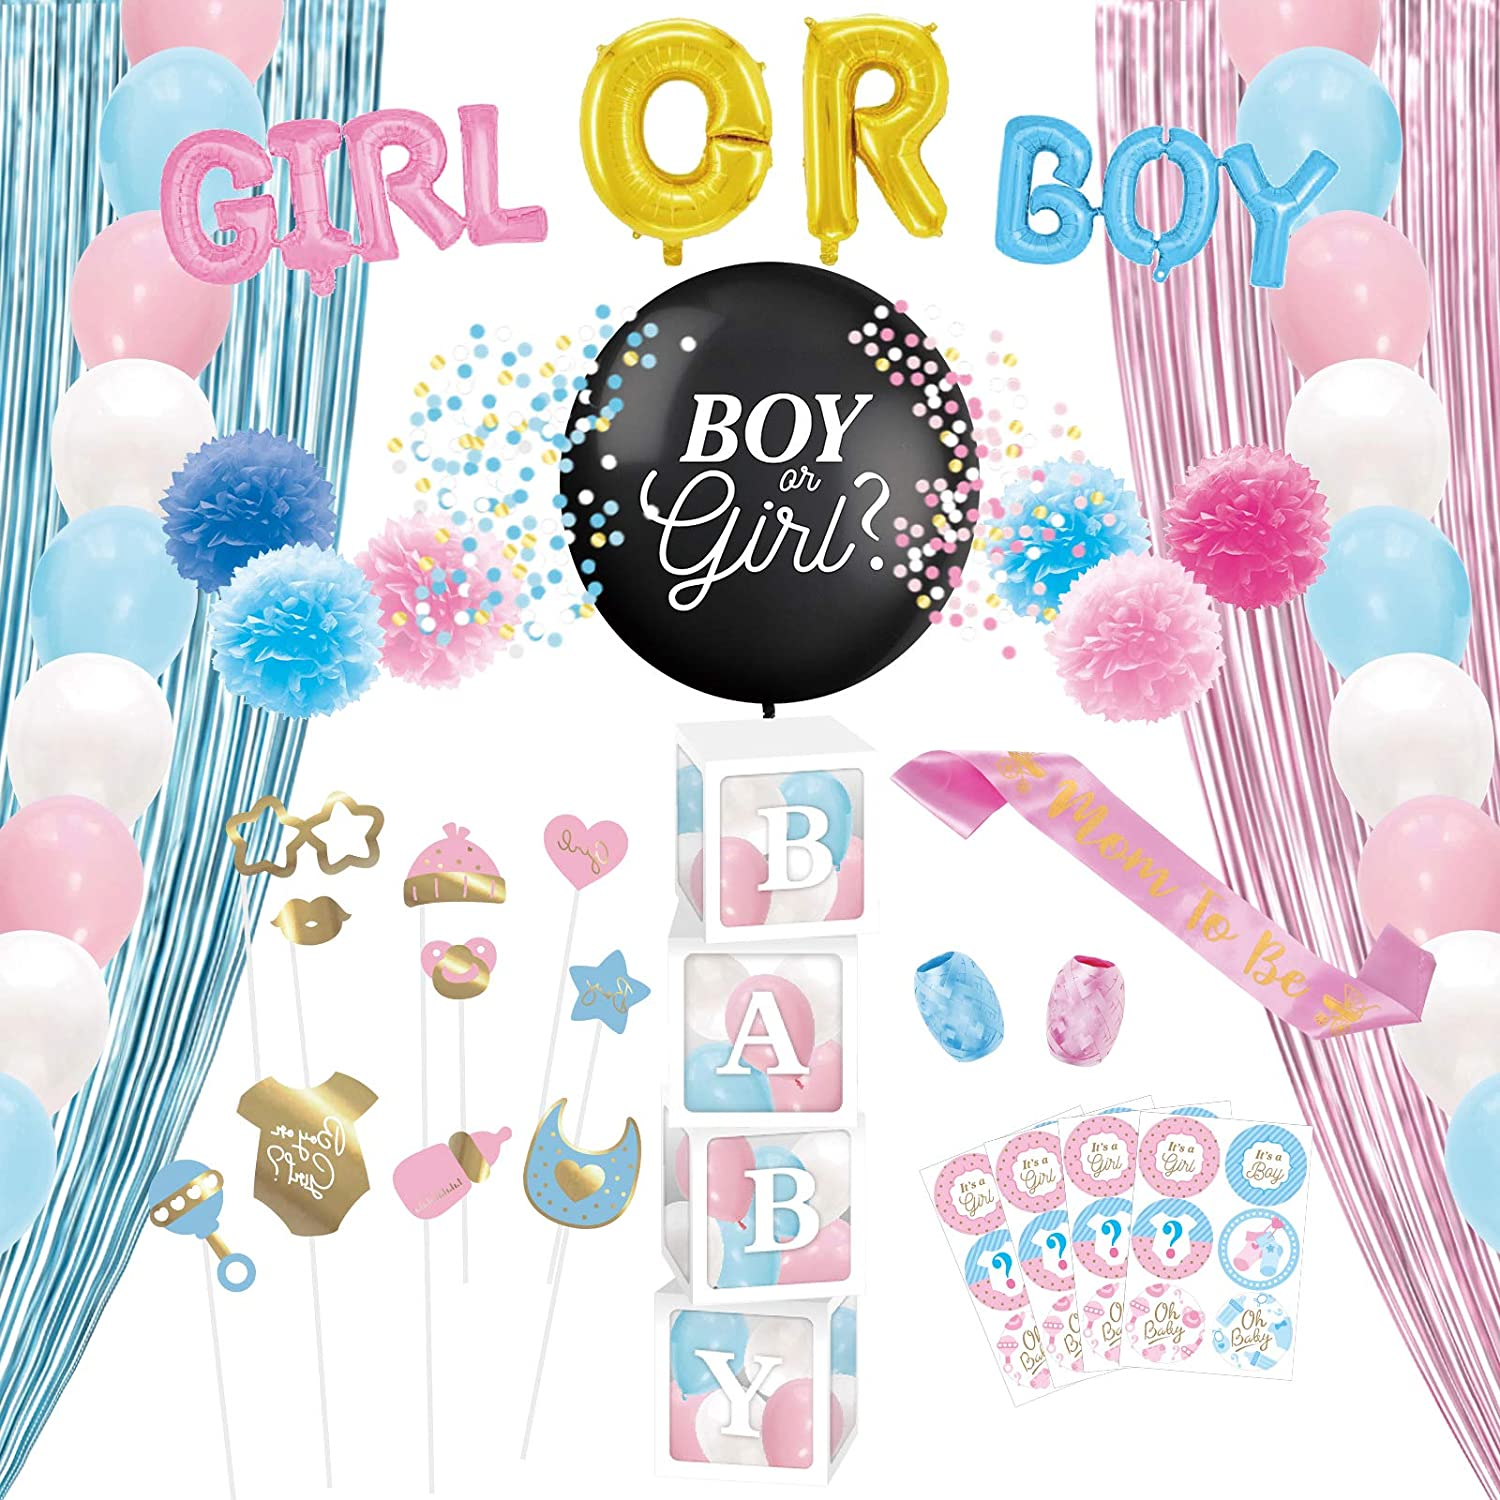 Decorlife Gender Reveal Party Supplies, Total 72PCS, Backdrop Curtain, Baby Boxes with Letters for Baby Shower, Boy or Girl Balloon, Mom to Be Sash, 36 Inch Balloon, Photo Booth Props, Pink and Blue Balloons for Gender Reveal, Stickers, Pom Poms Included